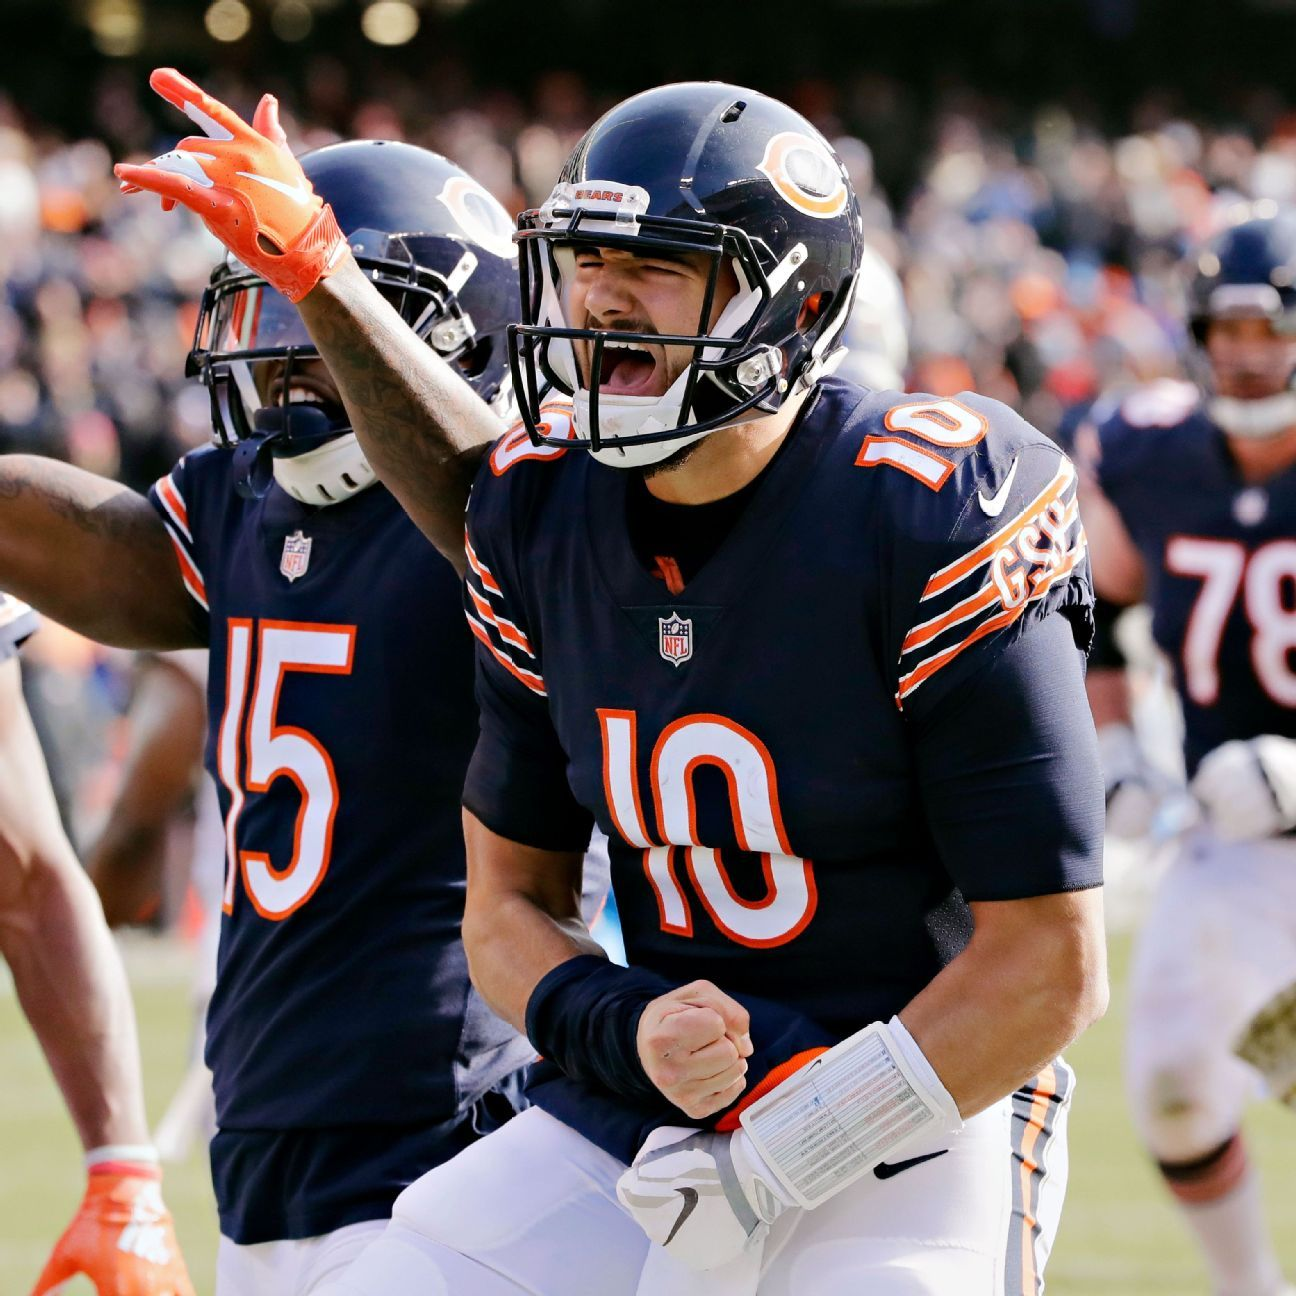 football-r462451 2 1296x1296 1 1 - Lessons from Week 10: Diagnosing flaws on NFLs biggest flops